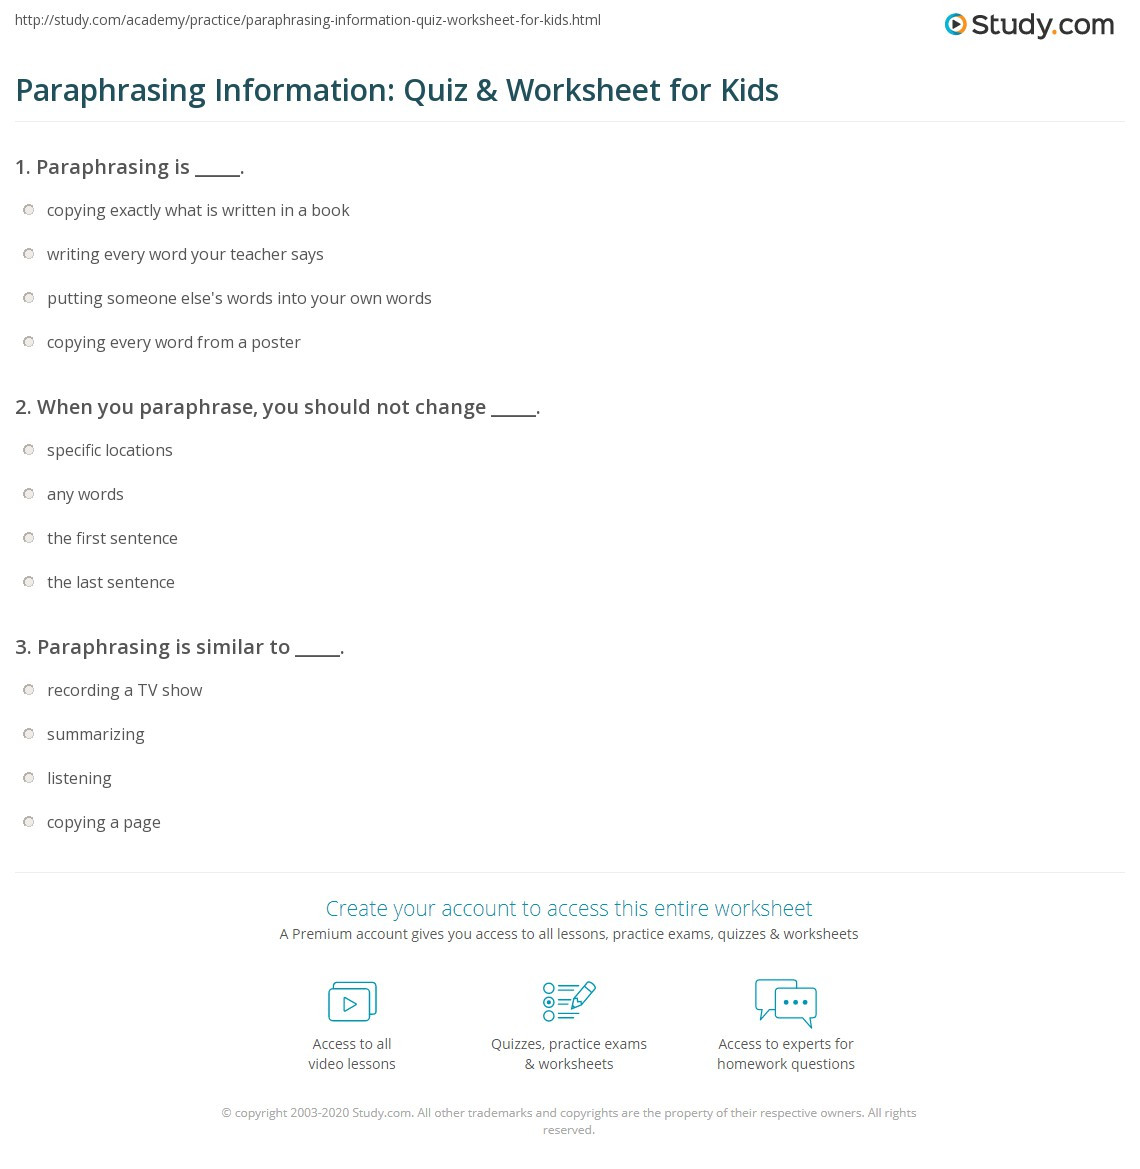 Paraphrasing Worksheets Middle School Paraphrasing Information Quiz & Worksheet for Kids